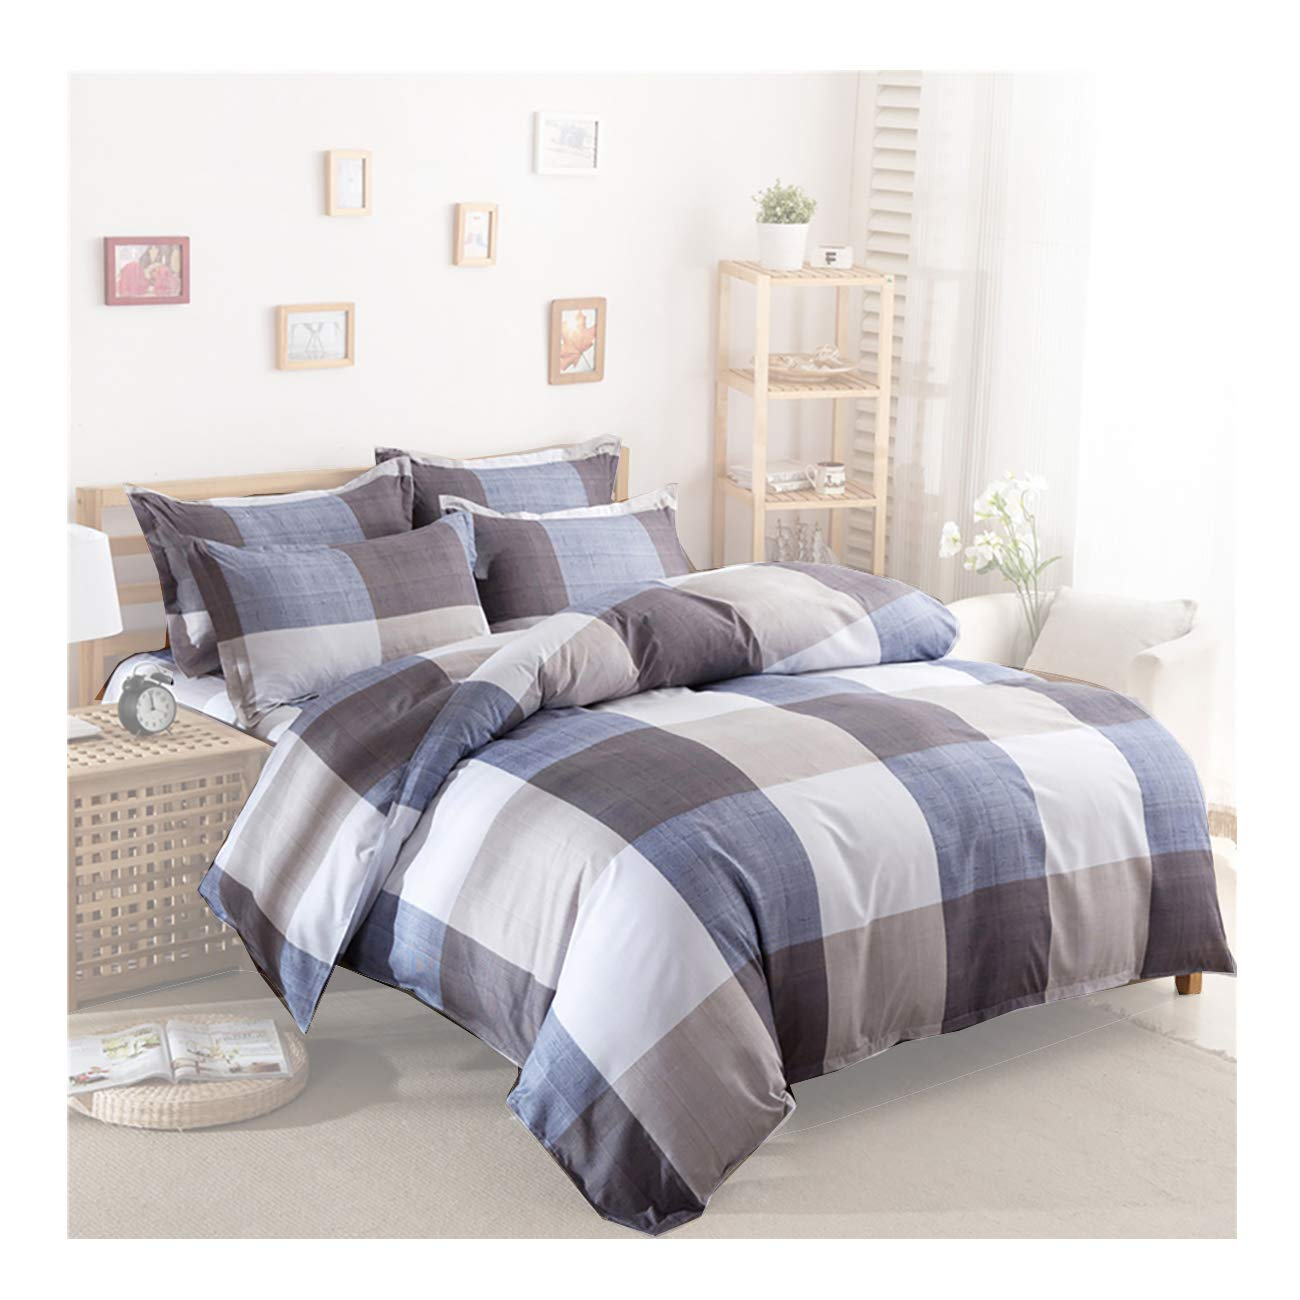 Uozzi Bedding 3 Piece Duvet Cover Set King, Reversible Printing with Brushed Microfiber, Lightweight Soft, Durable (Plaid-White&Blue&Gray, Queen)